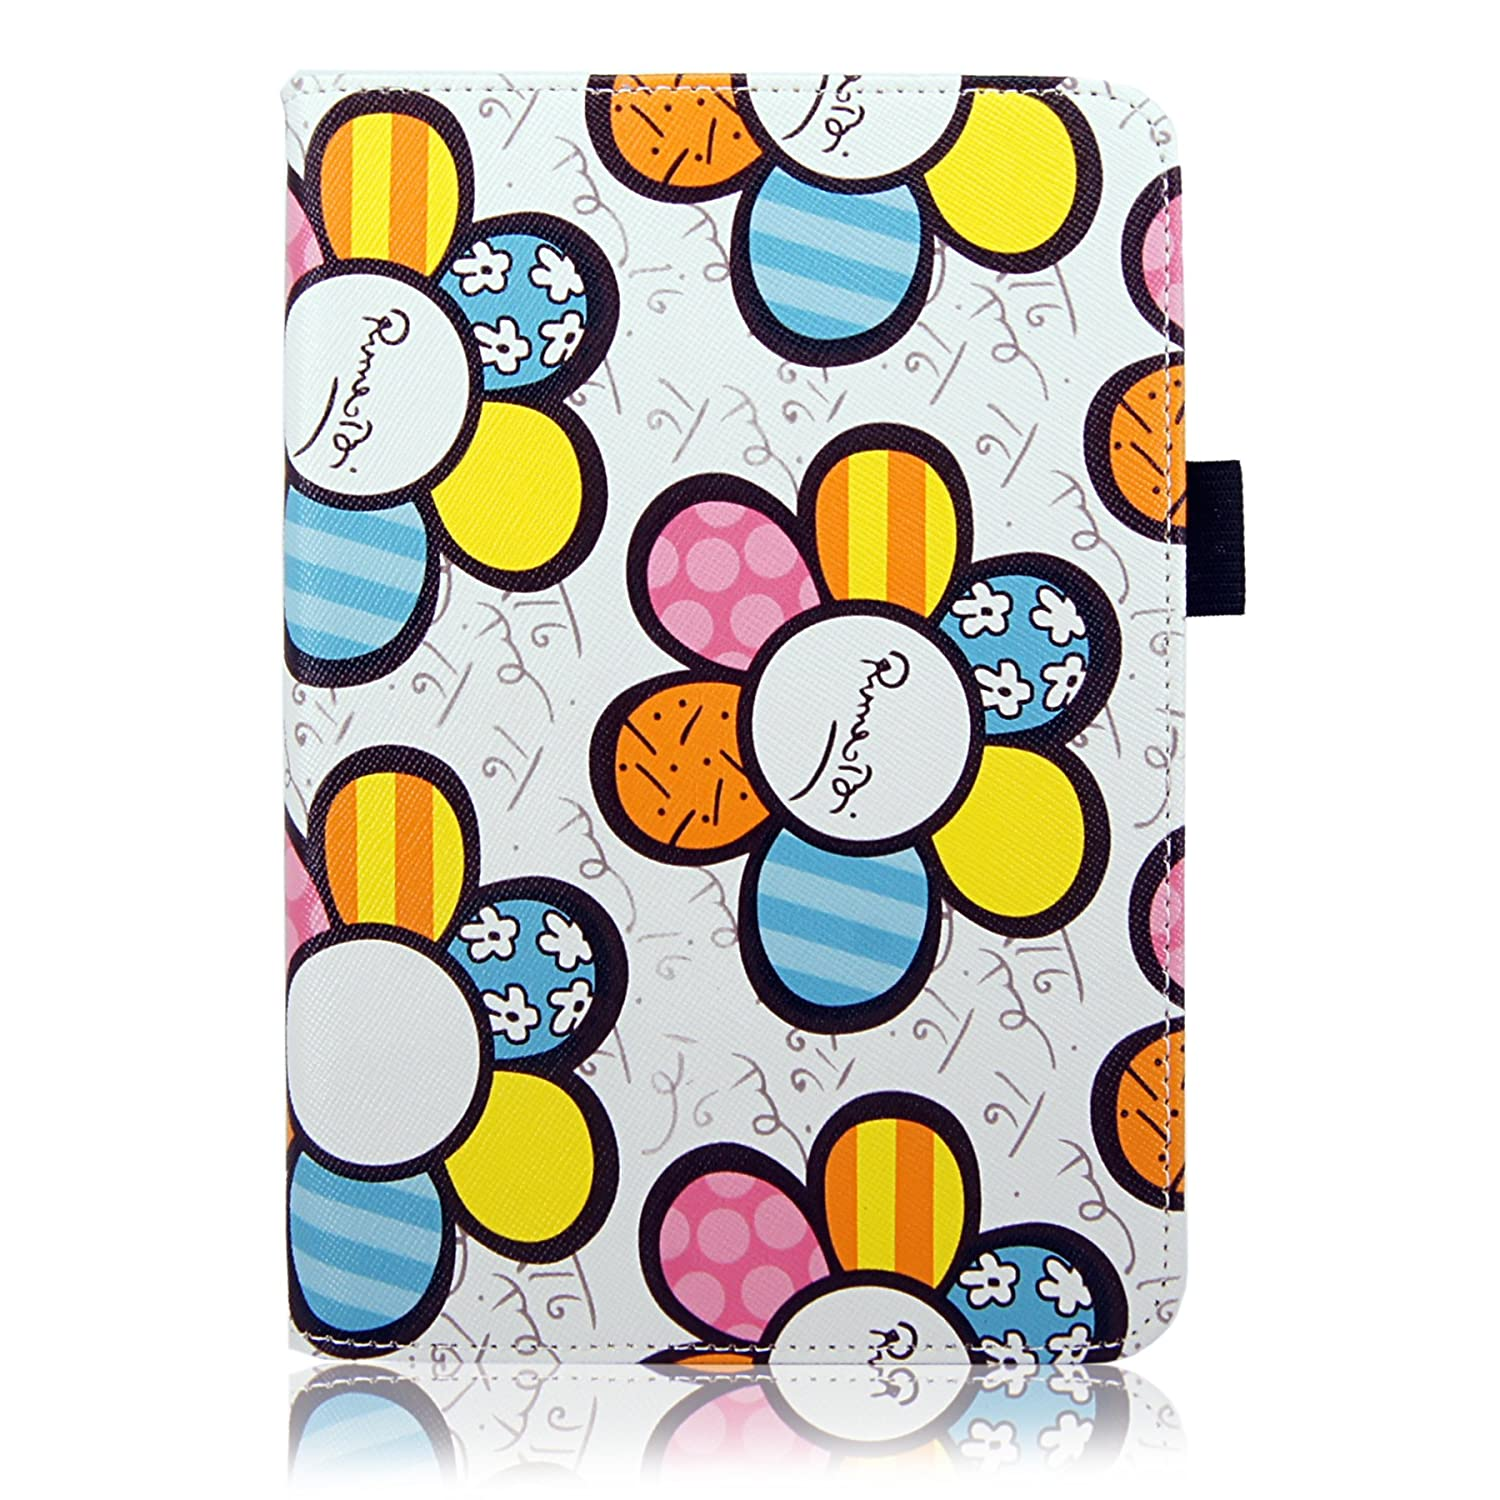 Cellularvilla Generation Cartoon Leather Protector Image 3